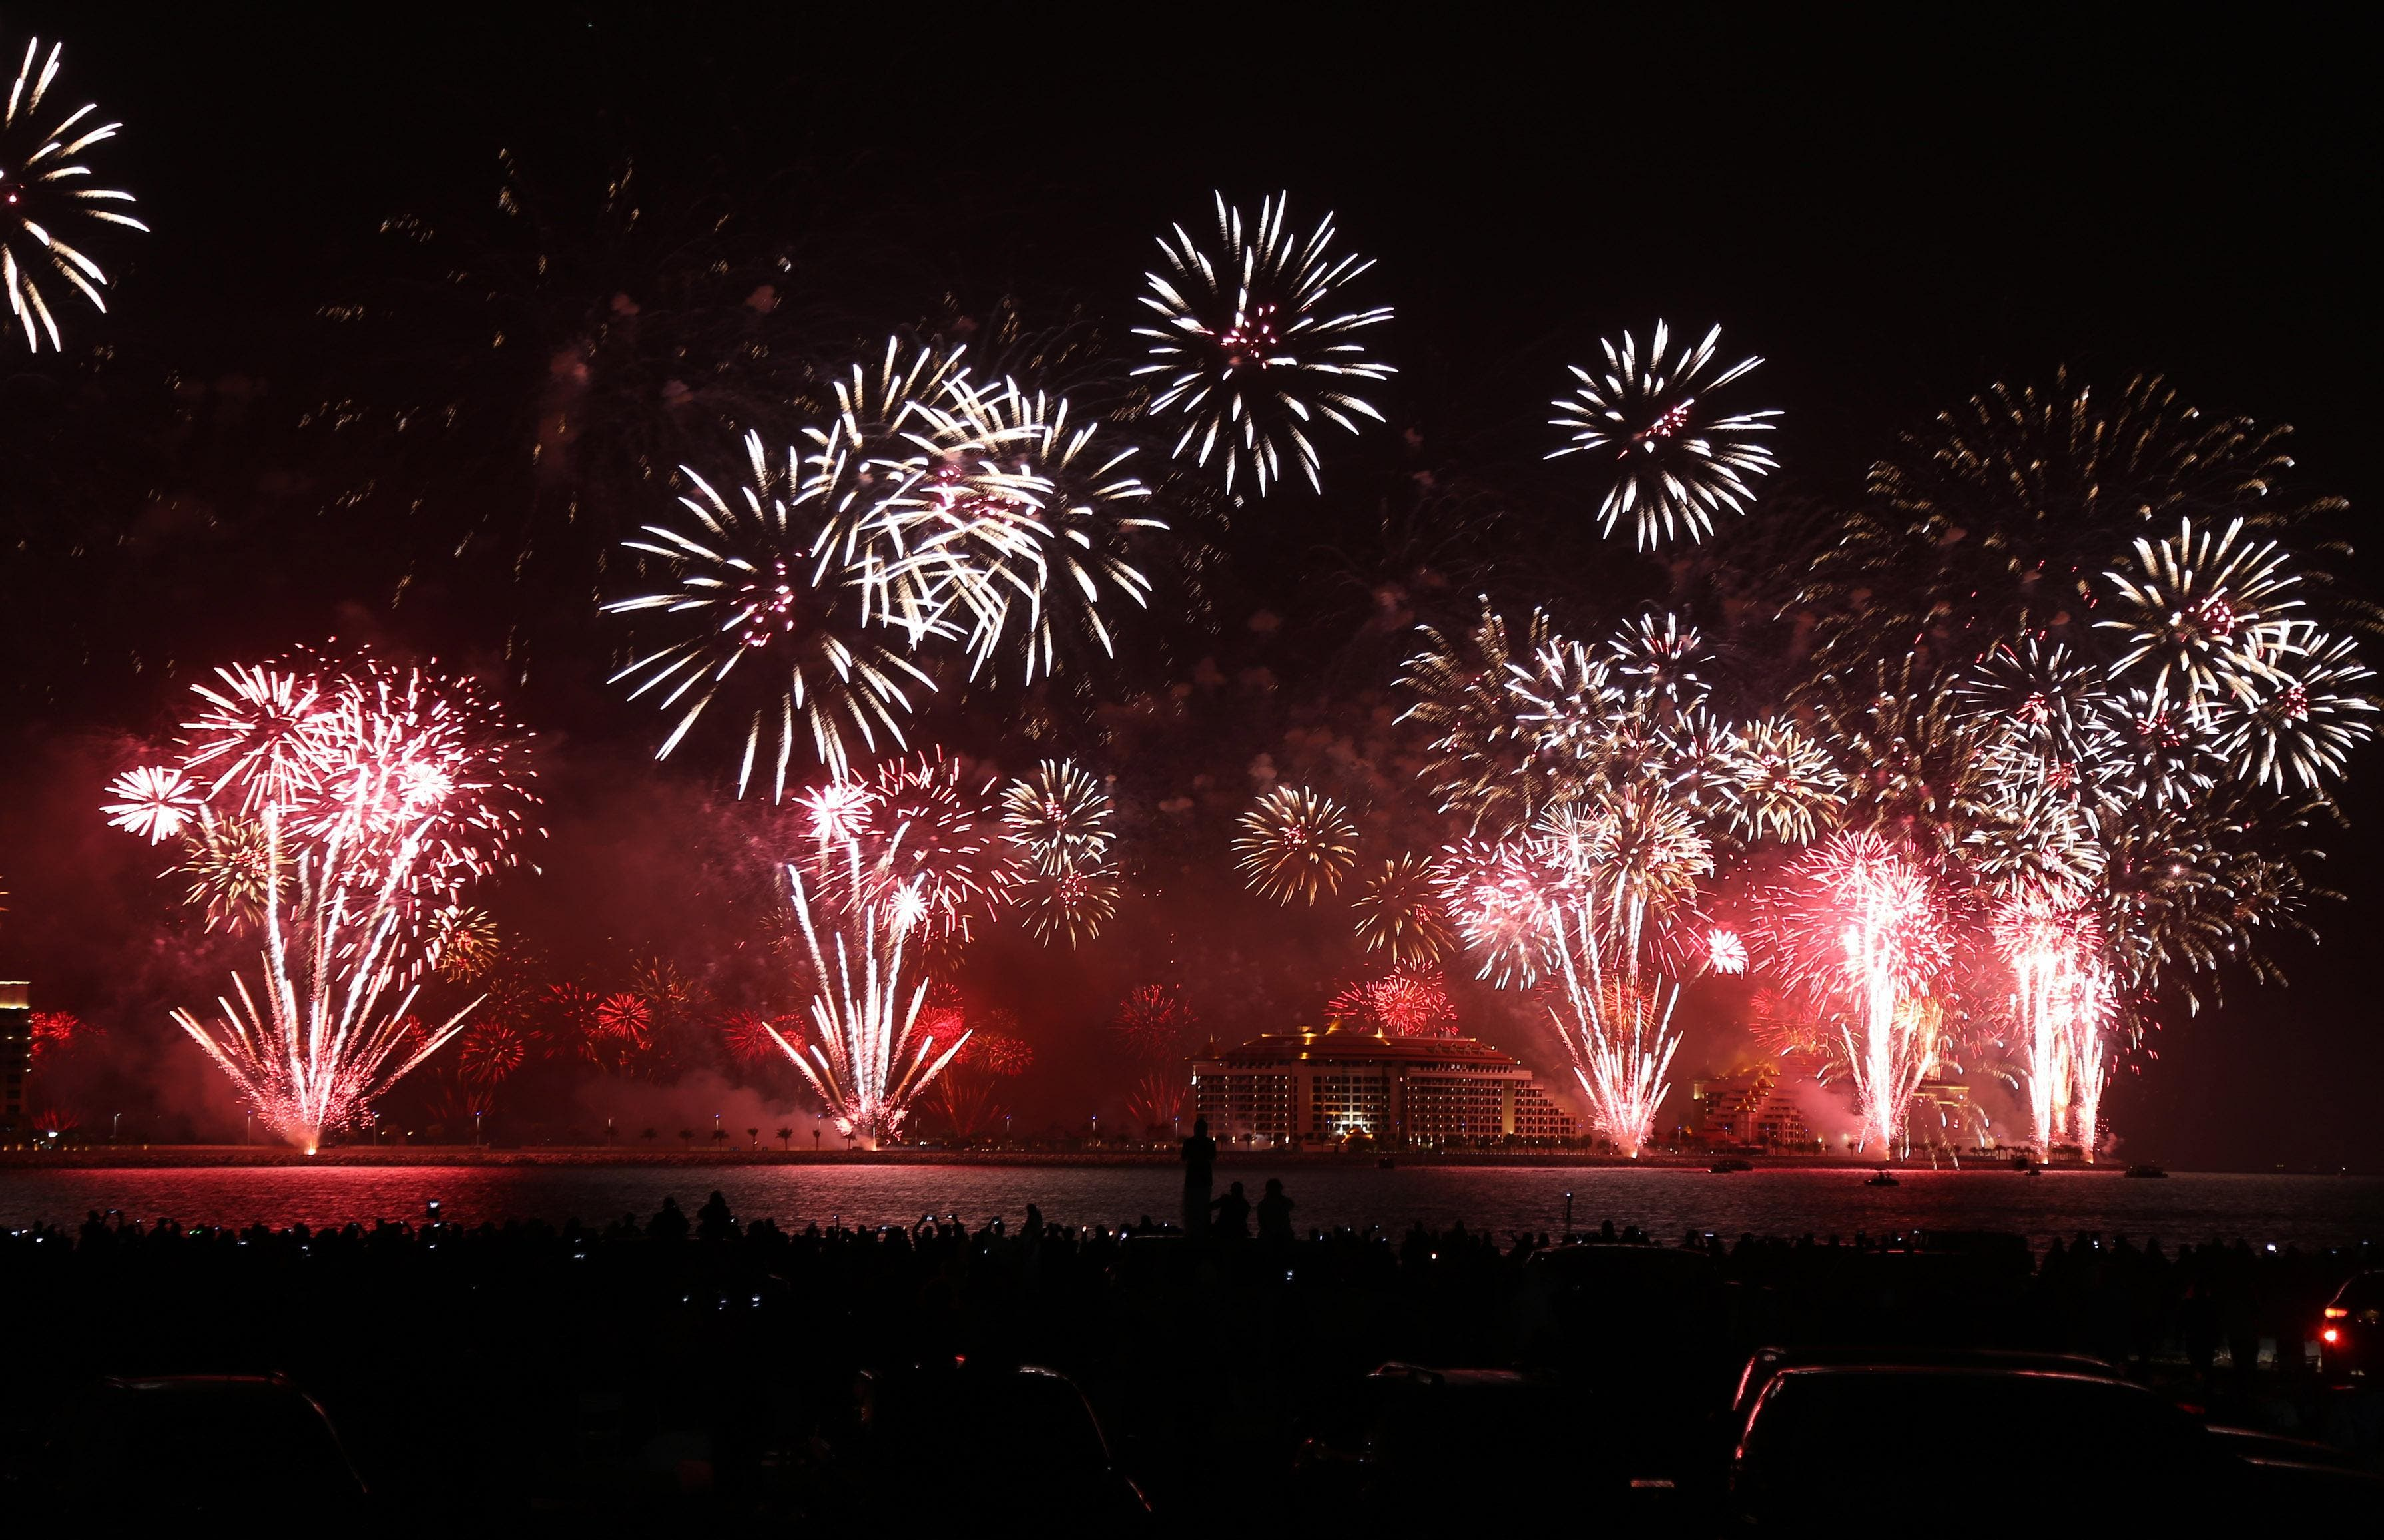 Dubai's world record 2014 fireworks